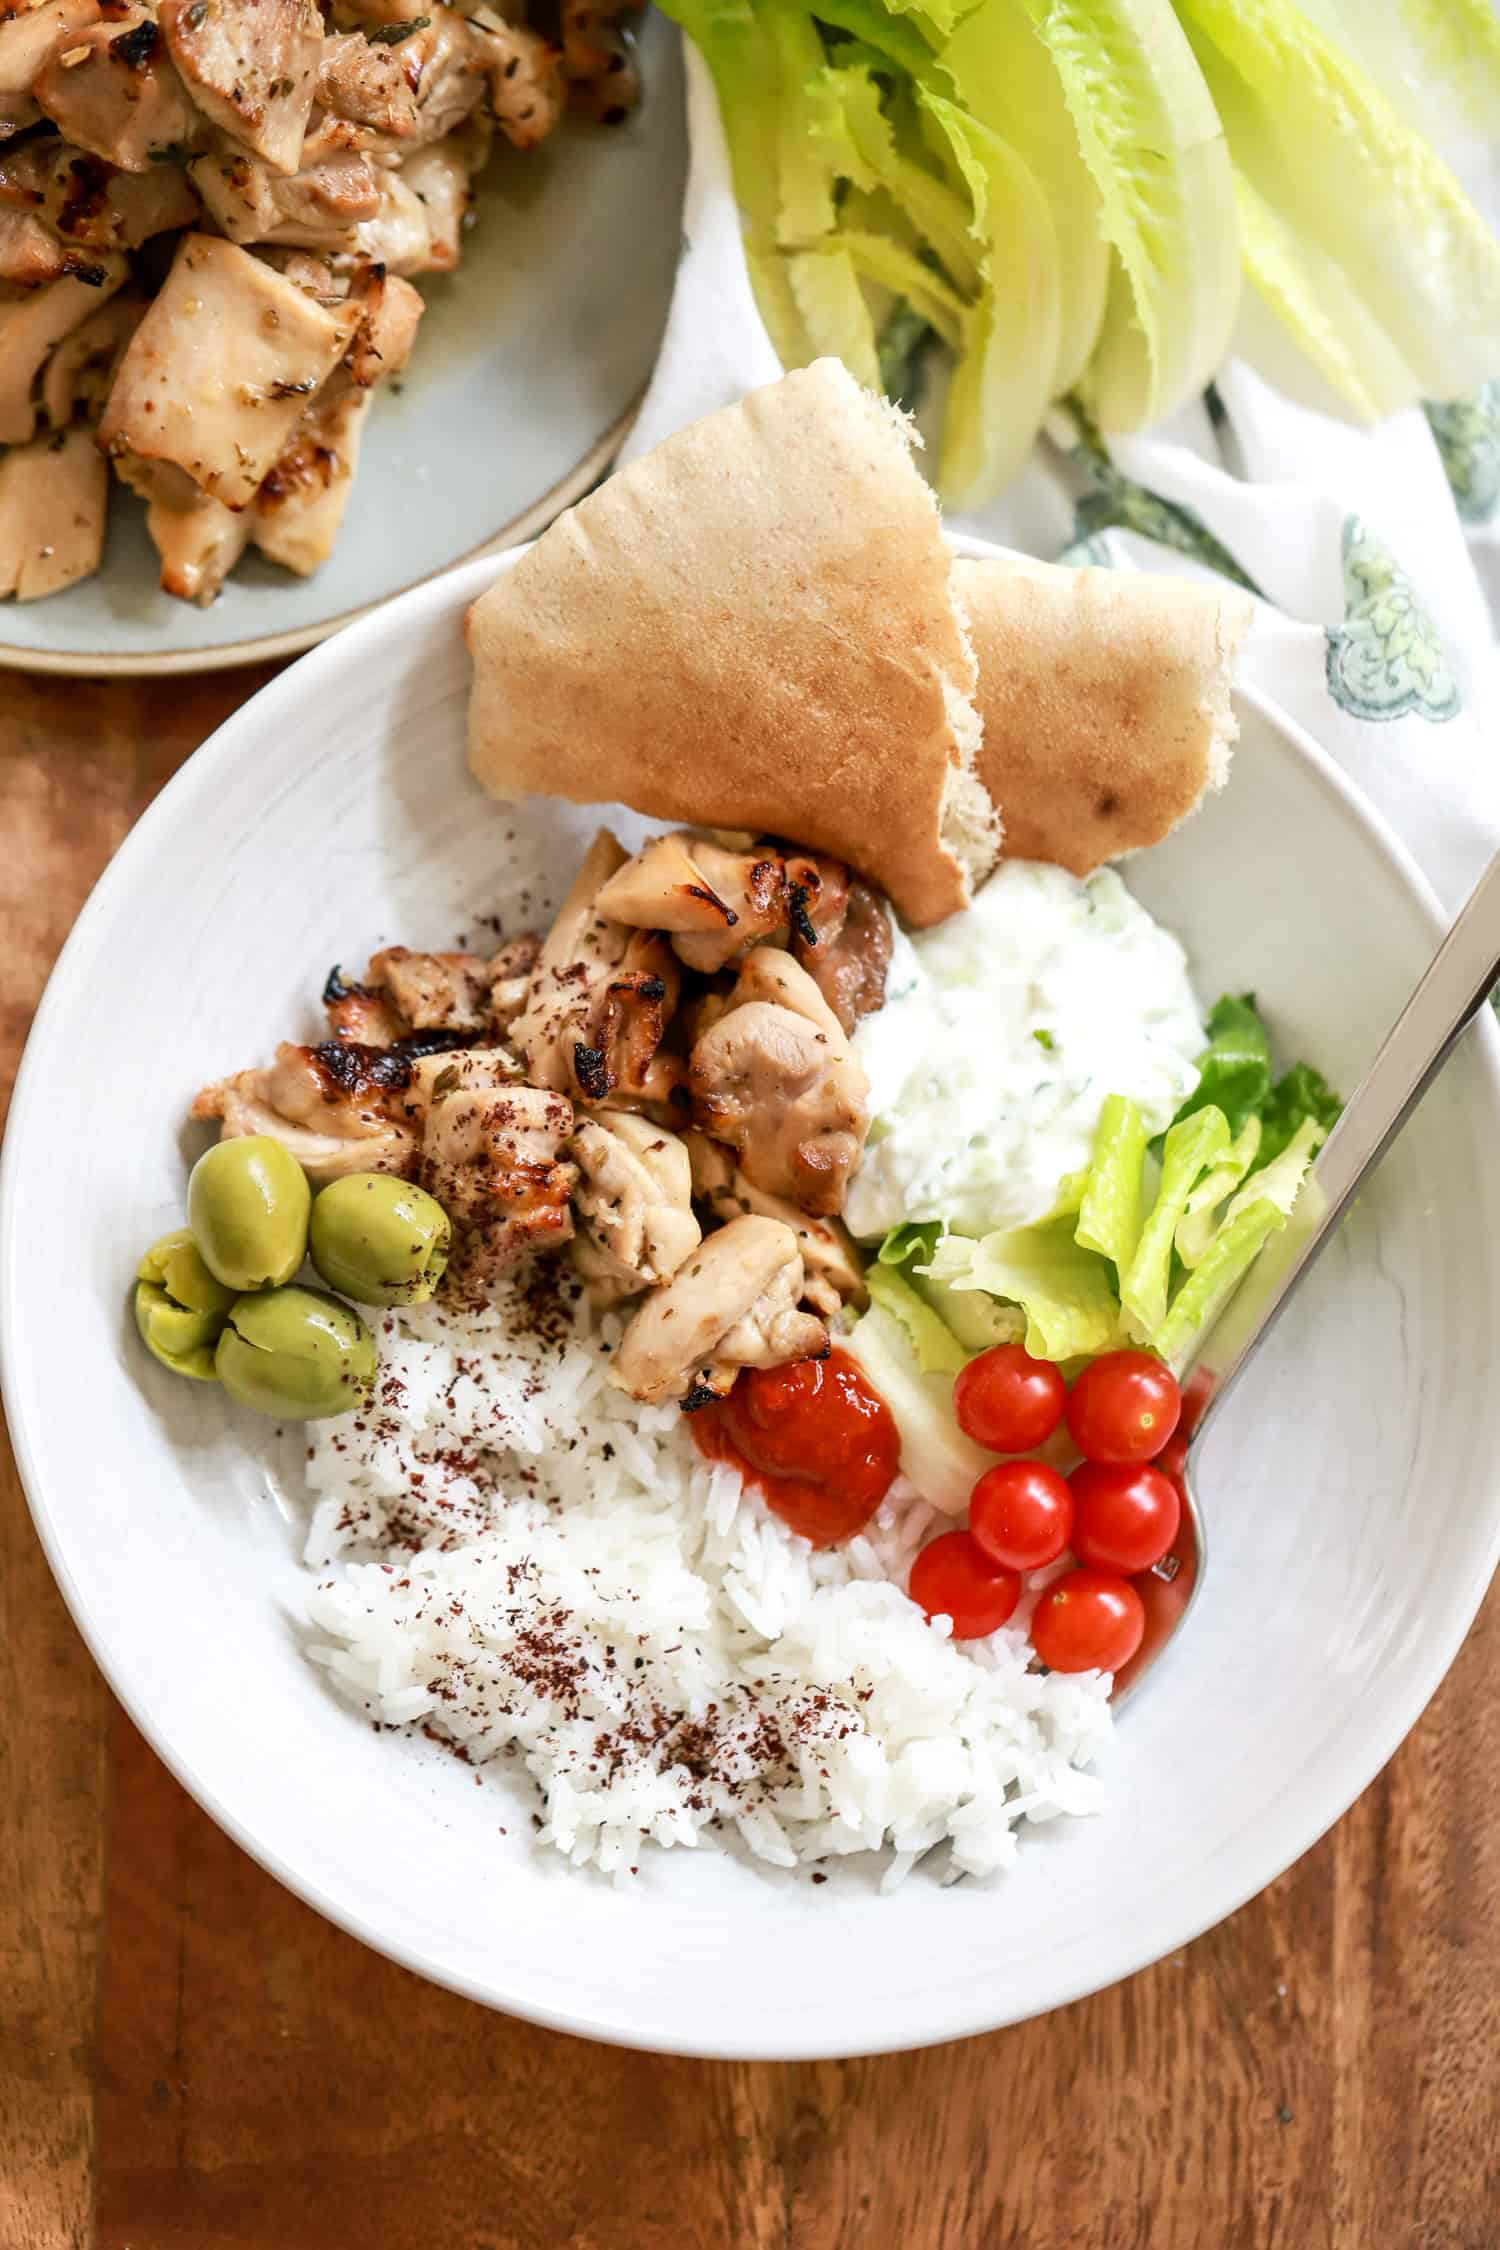 white bowl with rice, chicken pieces, tomatoes, olives, and lettuce leaves with pita on the side.